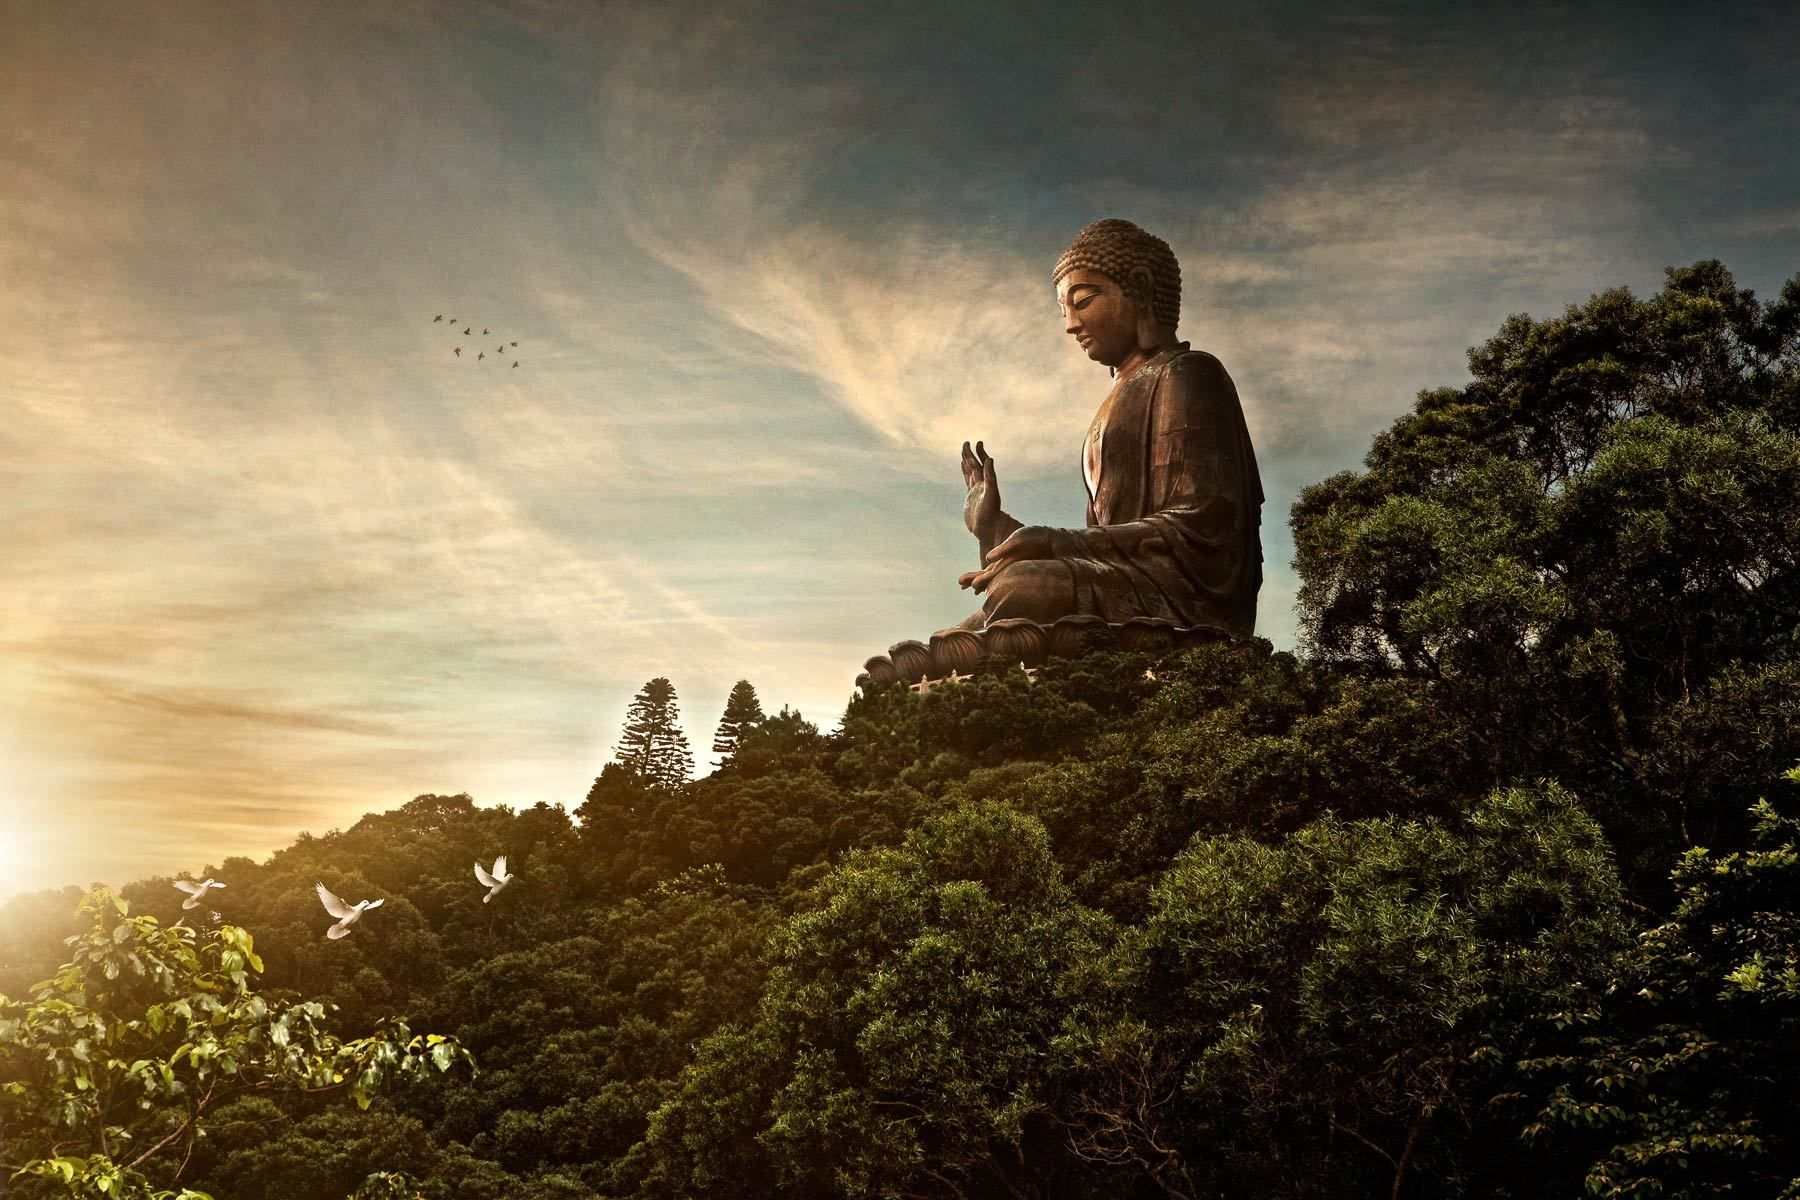 10 Best Buddha Wallpaper Widescreen Hd Full Hd 1080p For Pc Background 2018 Free Download Buddha Buddha Art Painting Best Gaming Wallpapers